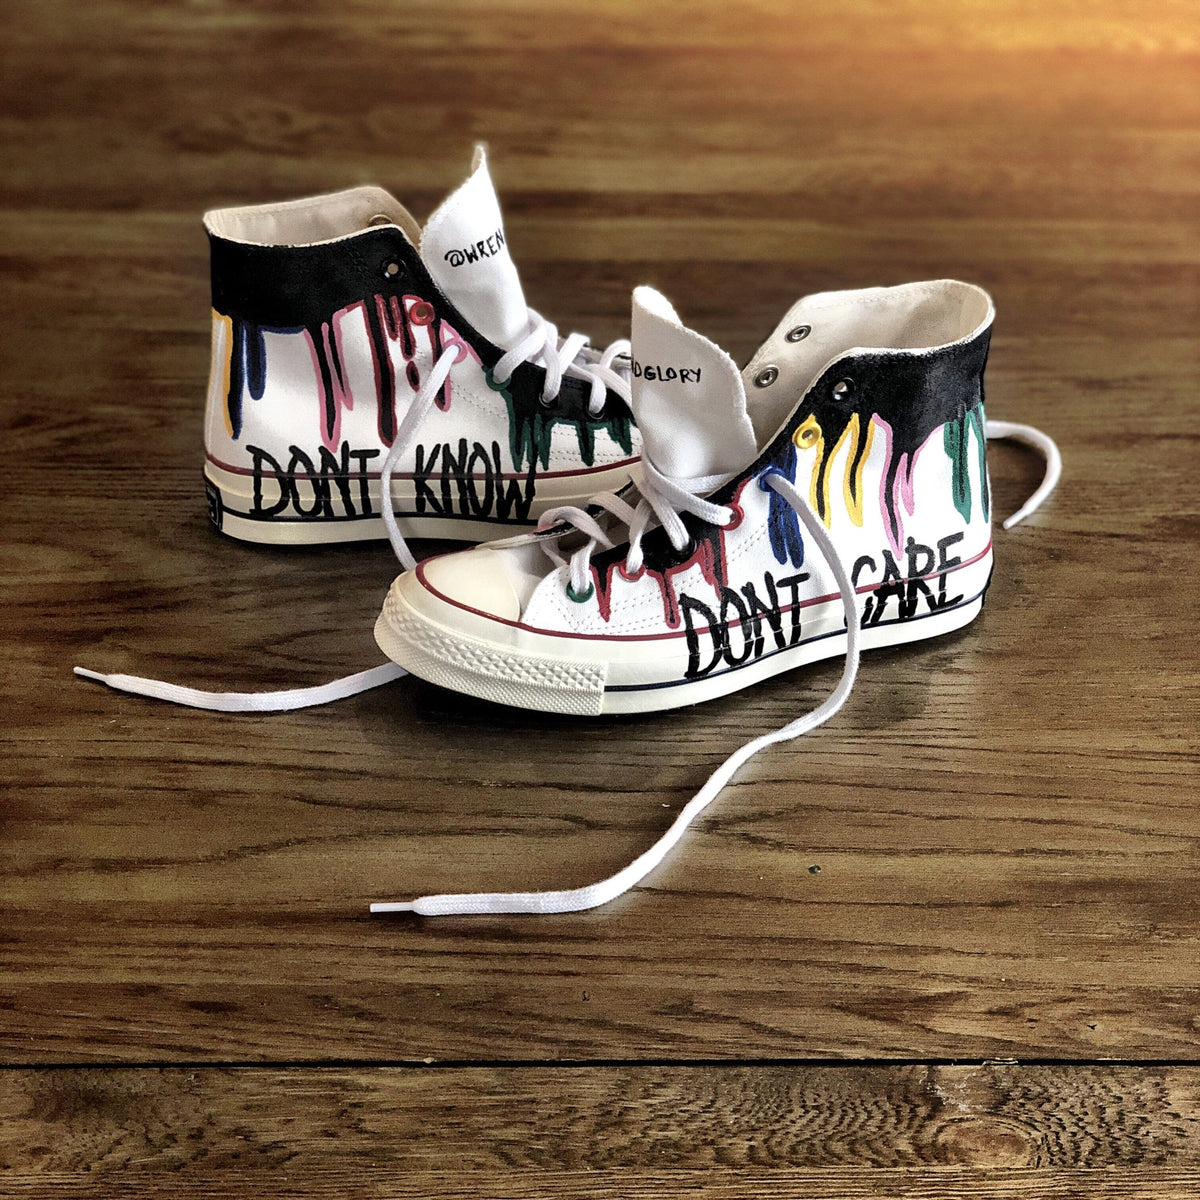 Black and rainbow colored white, canvas sneakers. DONT KNOW painted on one, DONT CARE painted on other. Painted on Converse high tops, Chuck Taylor All Star '70 High.